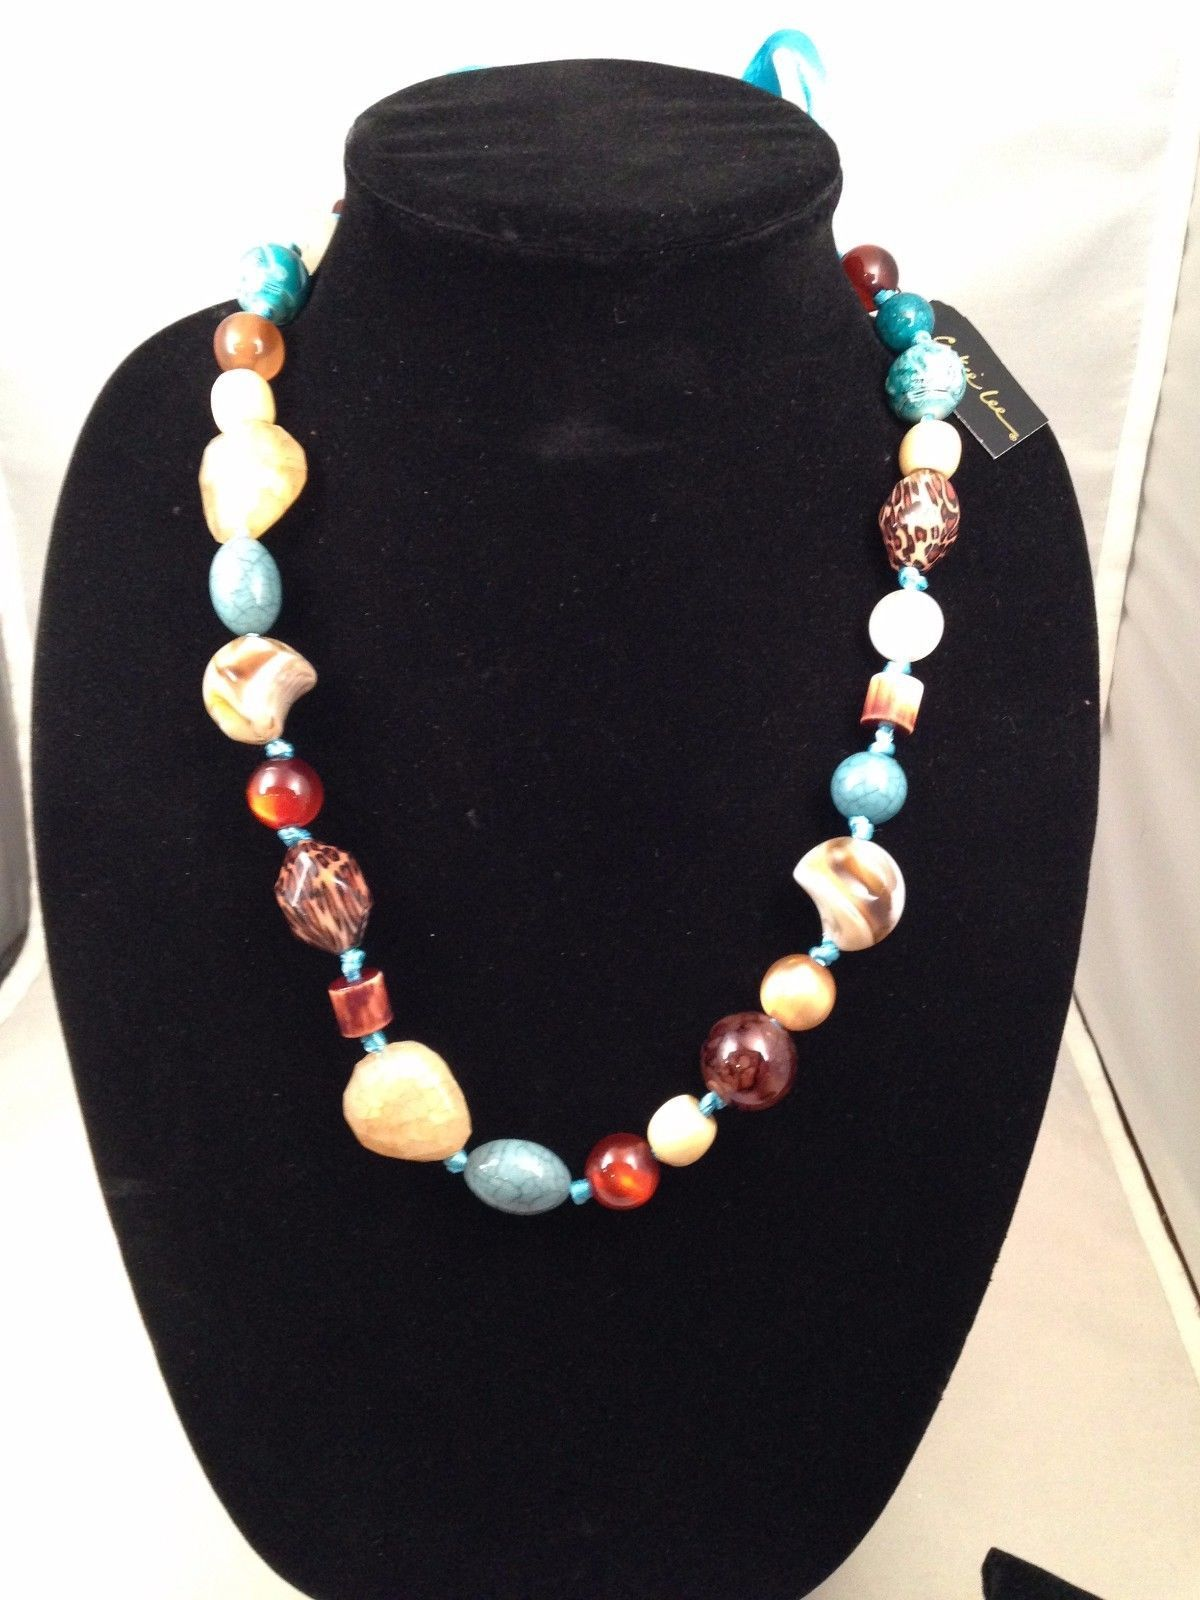 New Cookie Lee Adjustable Ribbon Necklace w/Various Polished Stones